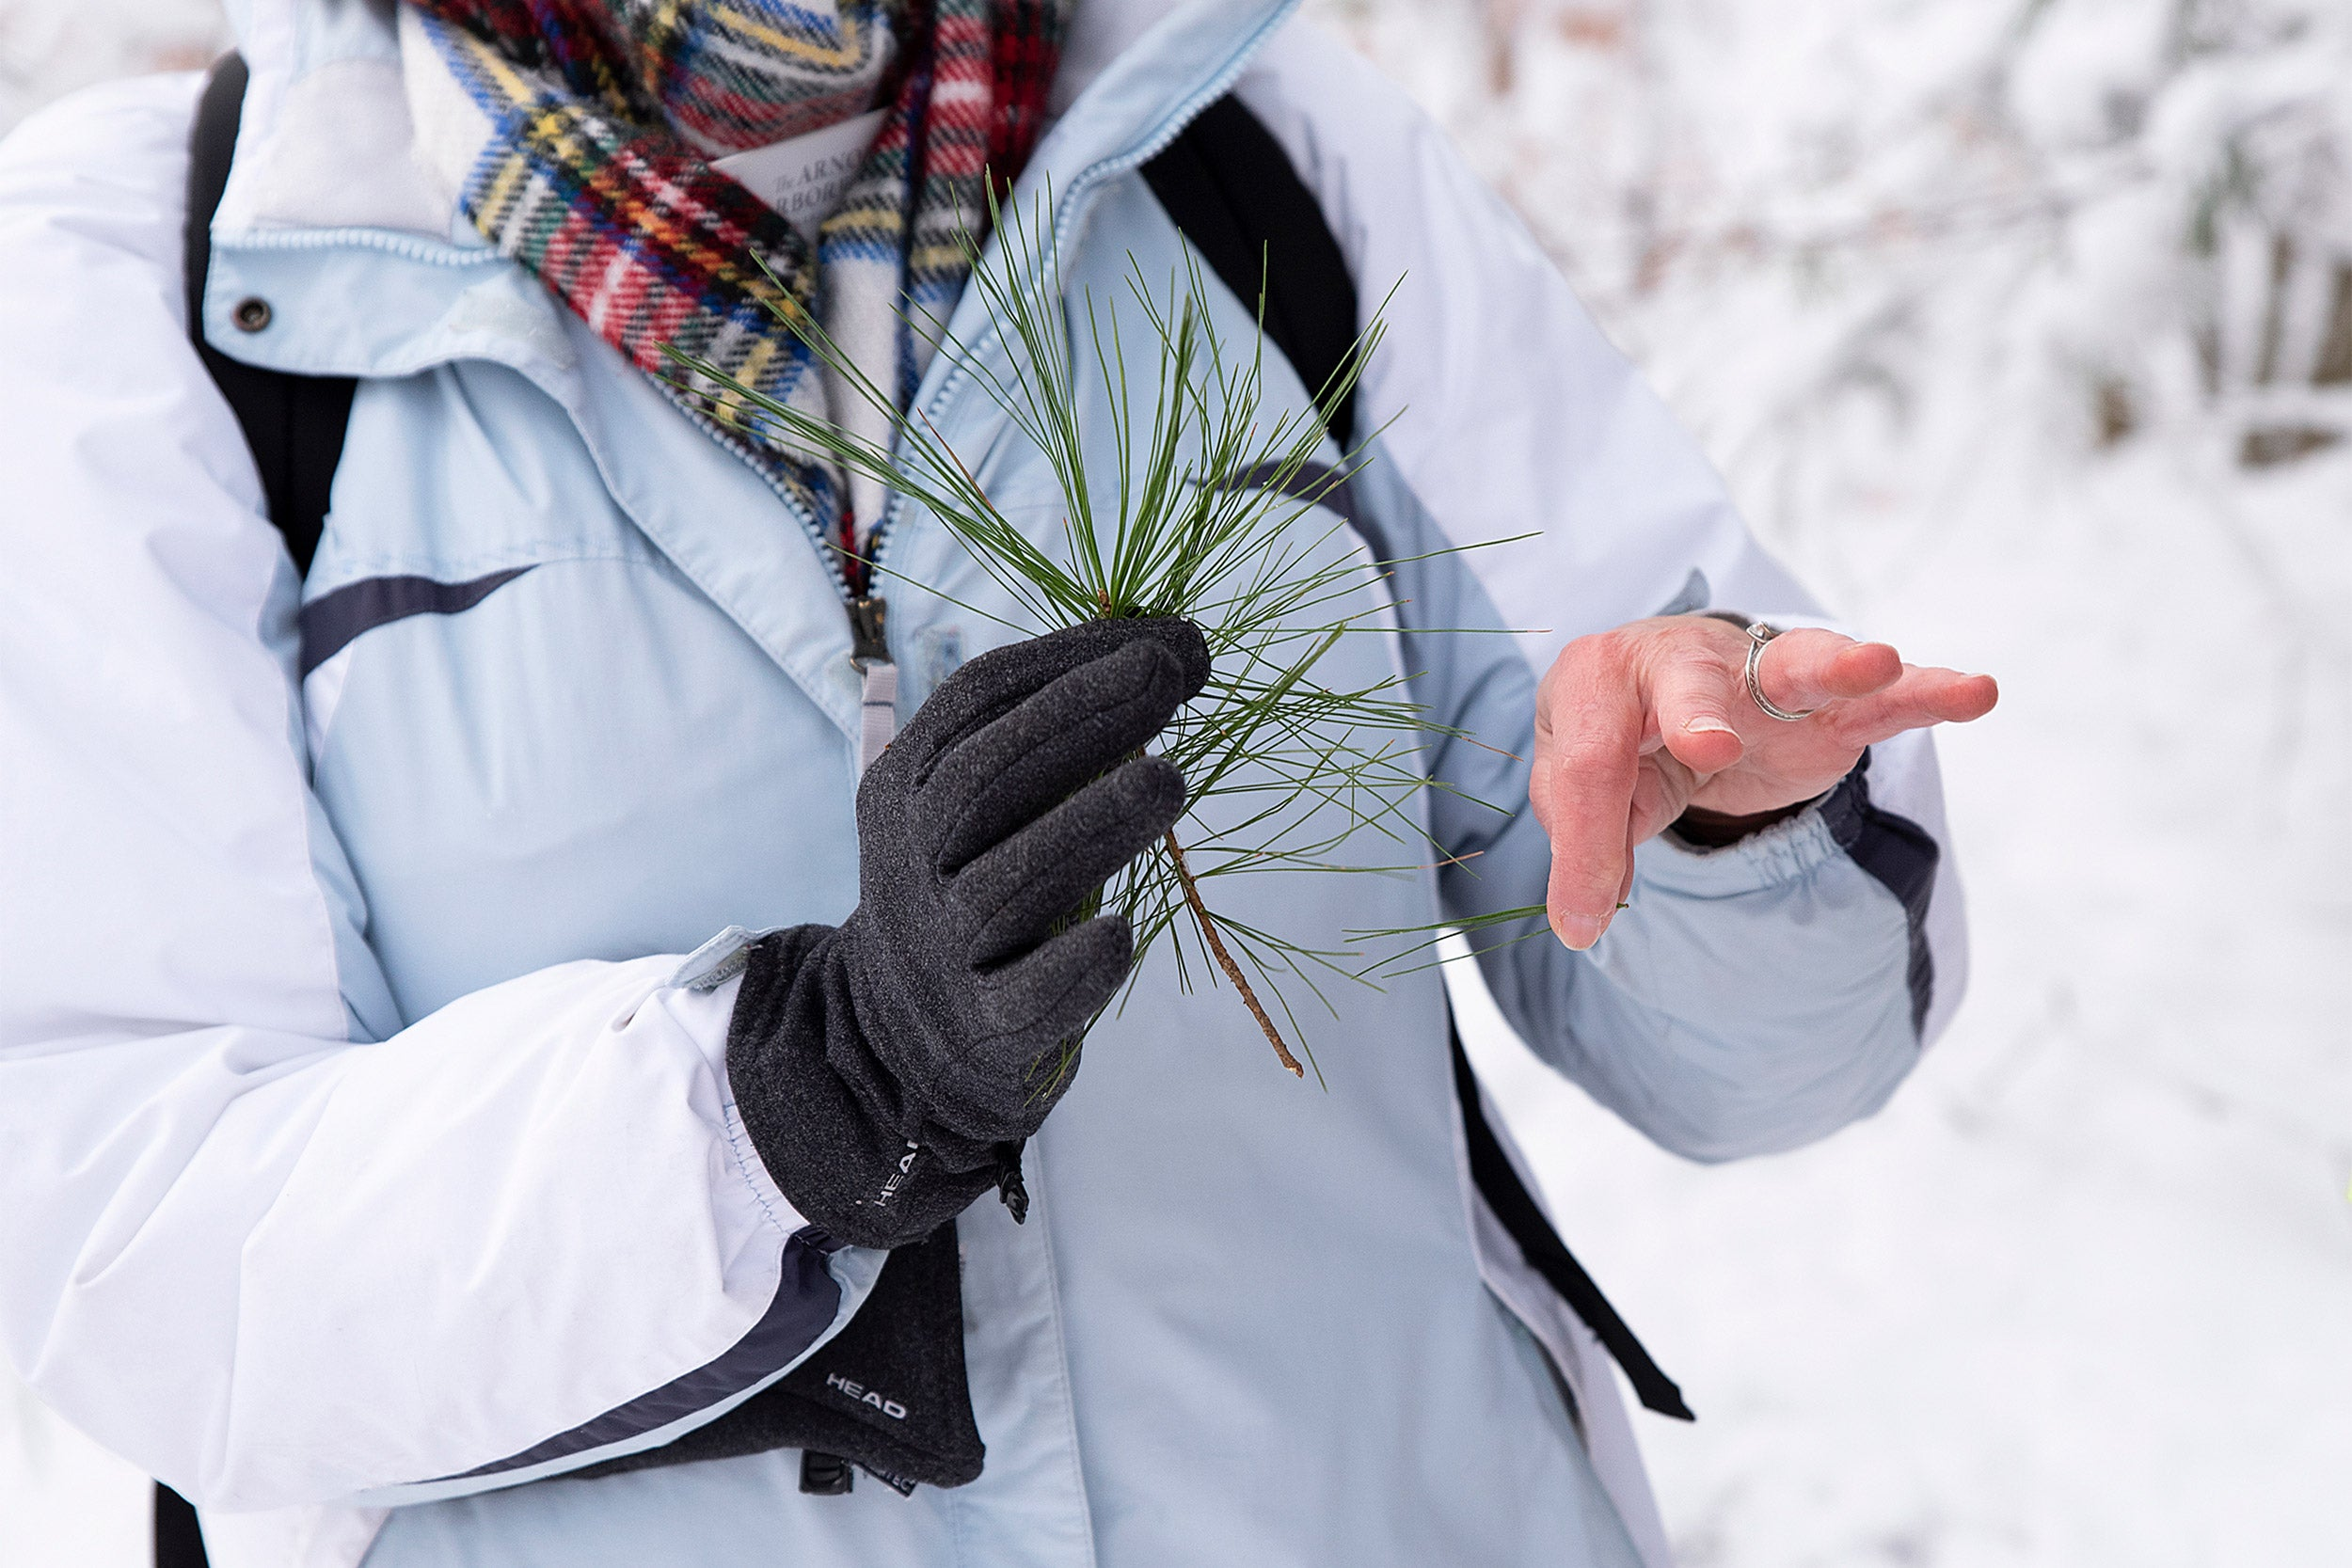 Teacher holding a pine tree sprig.